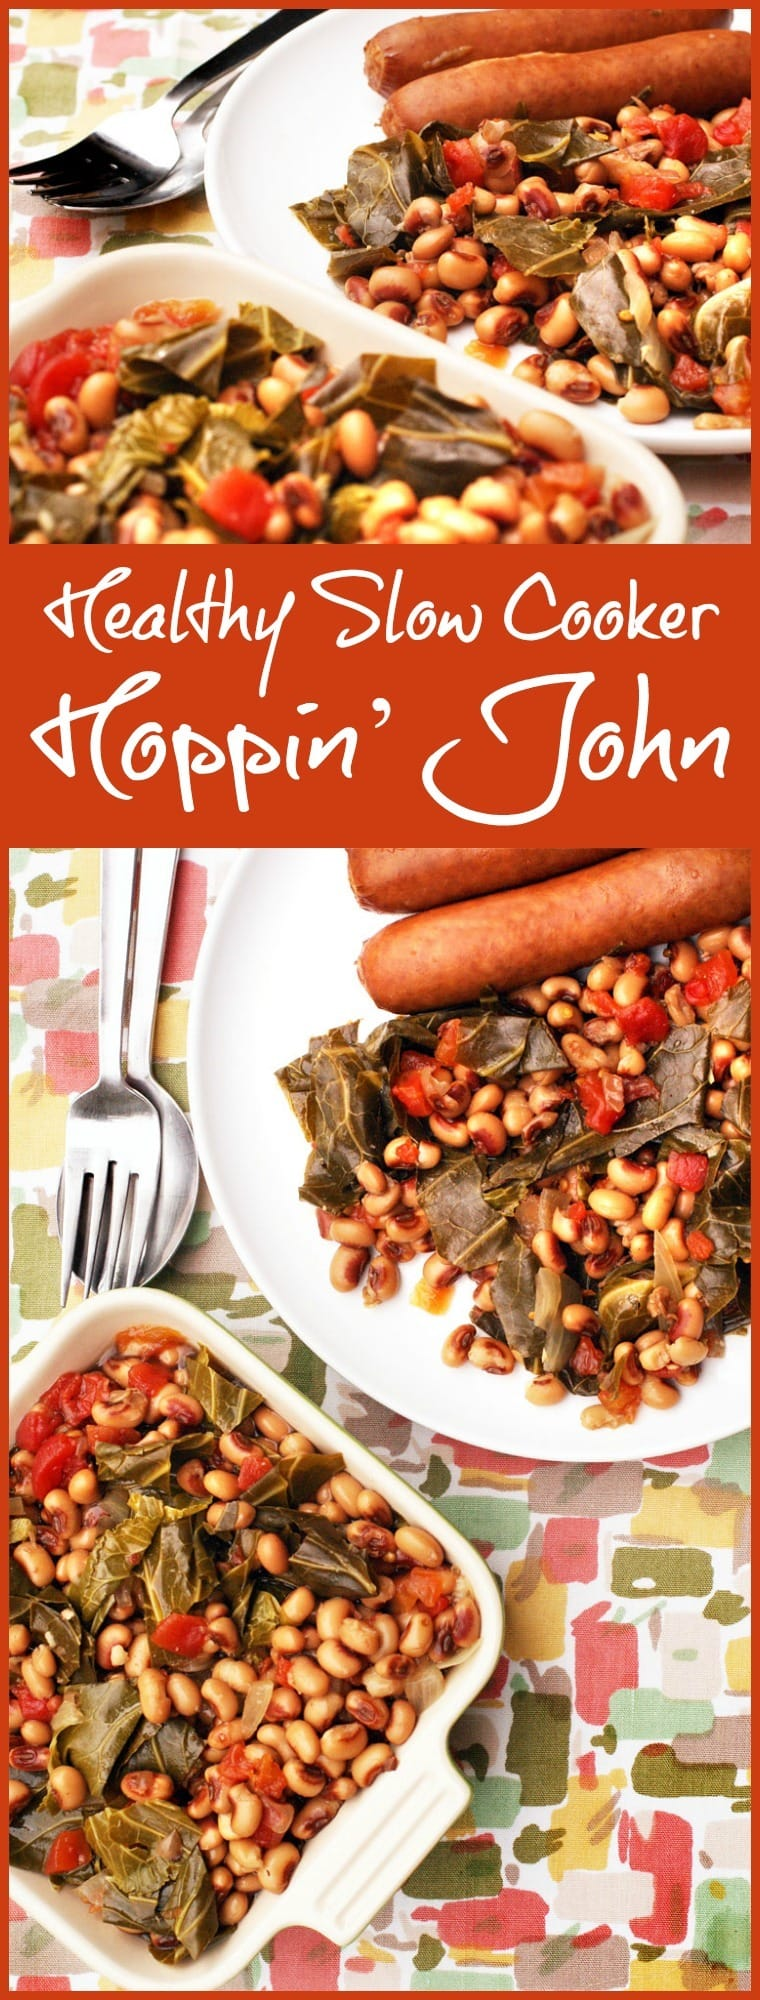 Looking for a hoppin john recipe for New Year's Day? Here's one that's healthy that you can make in the slow cooker? Get the crockpot Hoppin' John recipe at This Mama Cooks! On a Diet